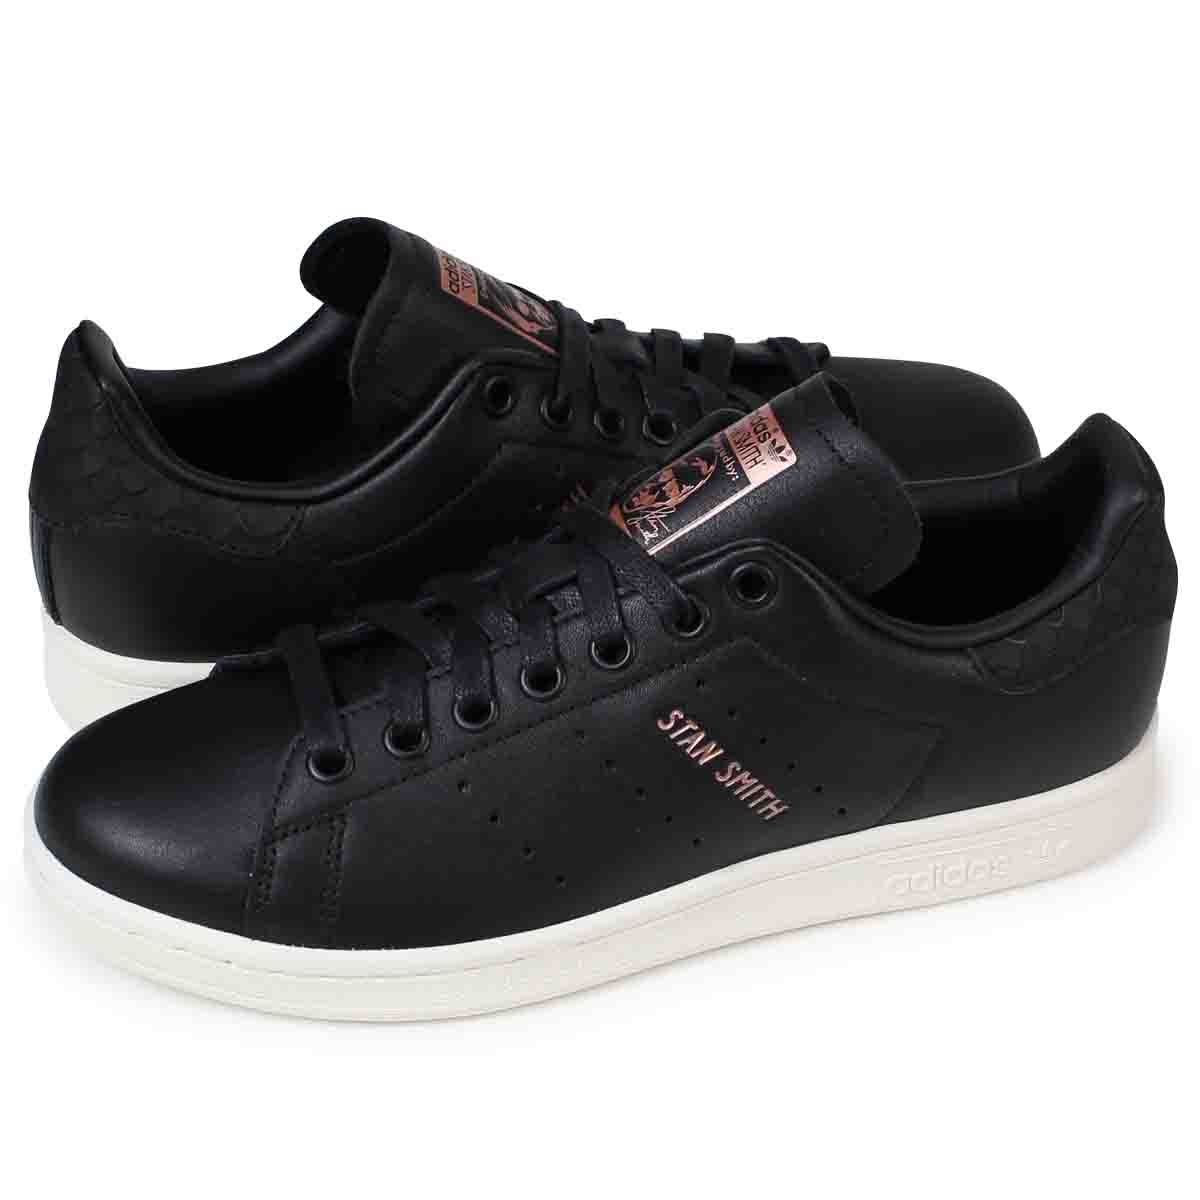 d2401874e10f1d ALLSPORTS  adidas originals STAN SMITH W Adidas Stan Smith Lady s sneakers  CQ2811 shoes black  12 7 Shinnyu load   1711